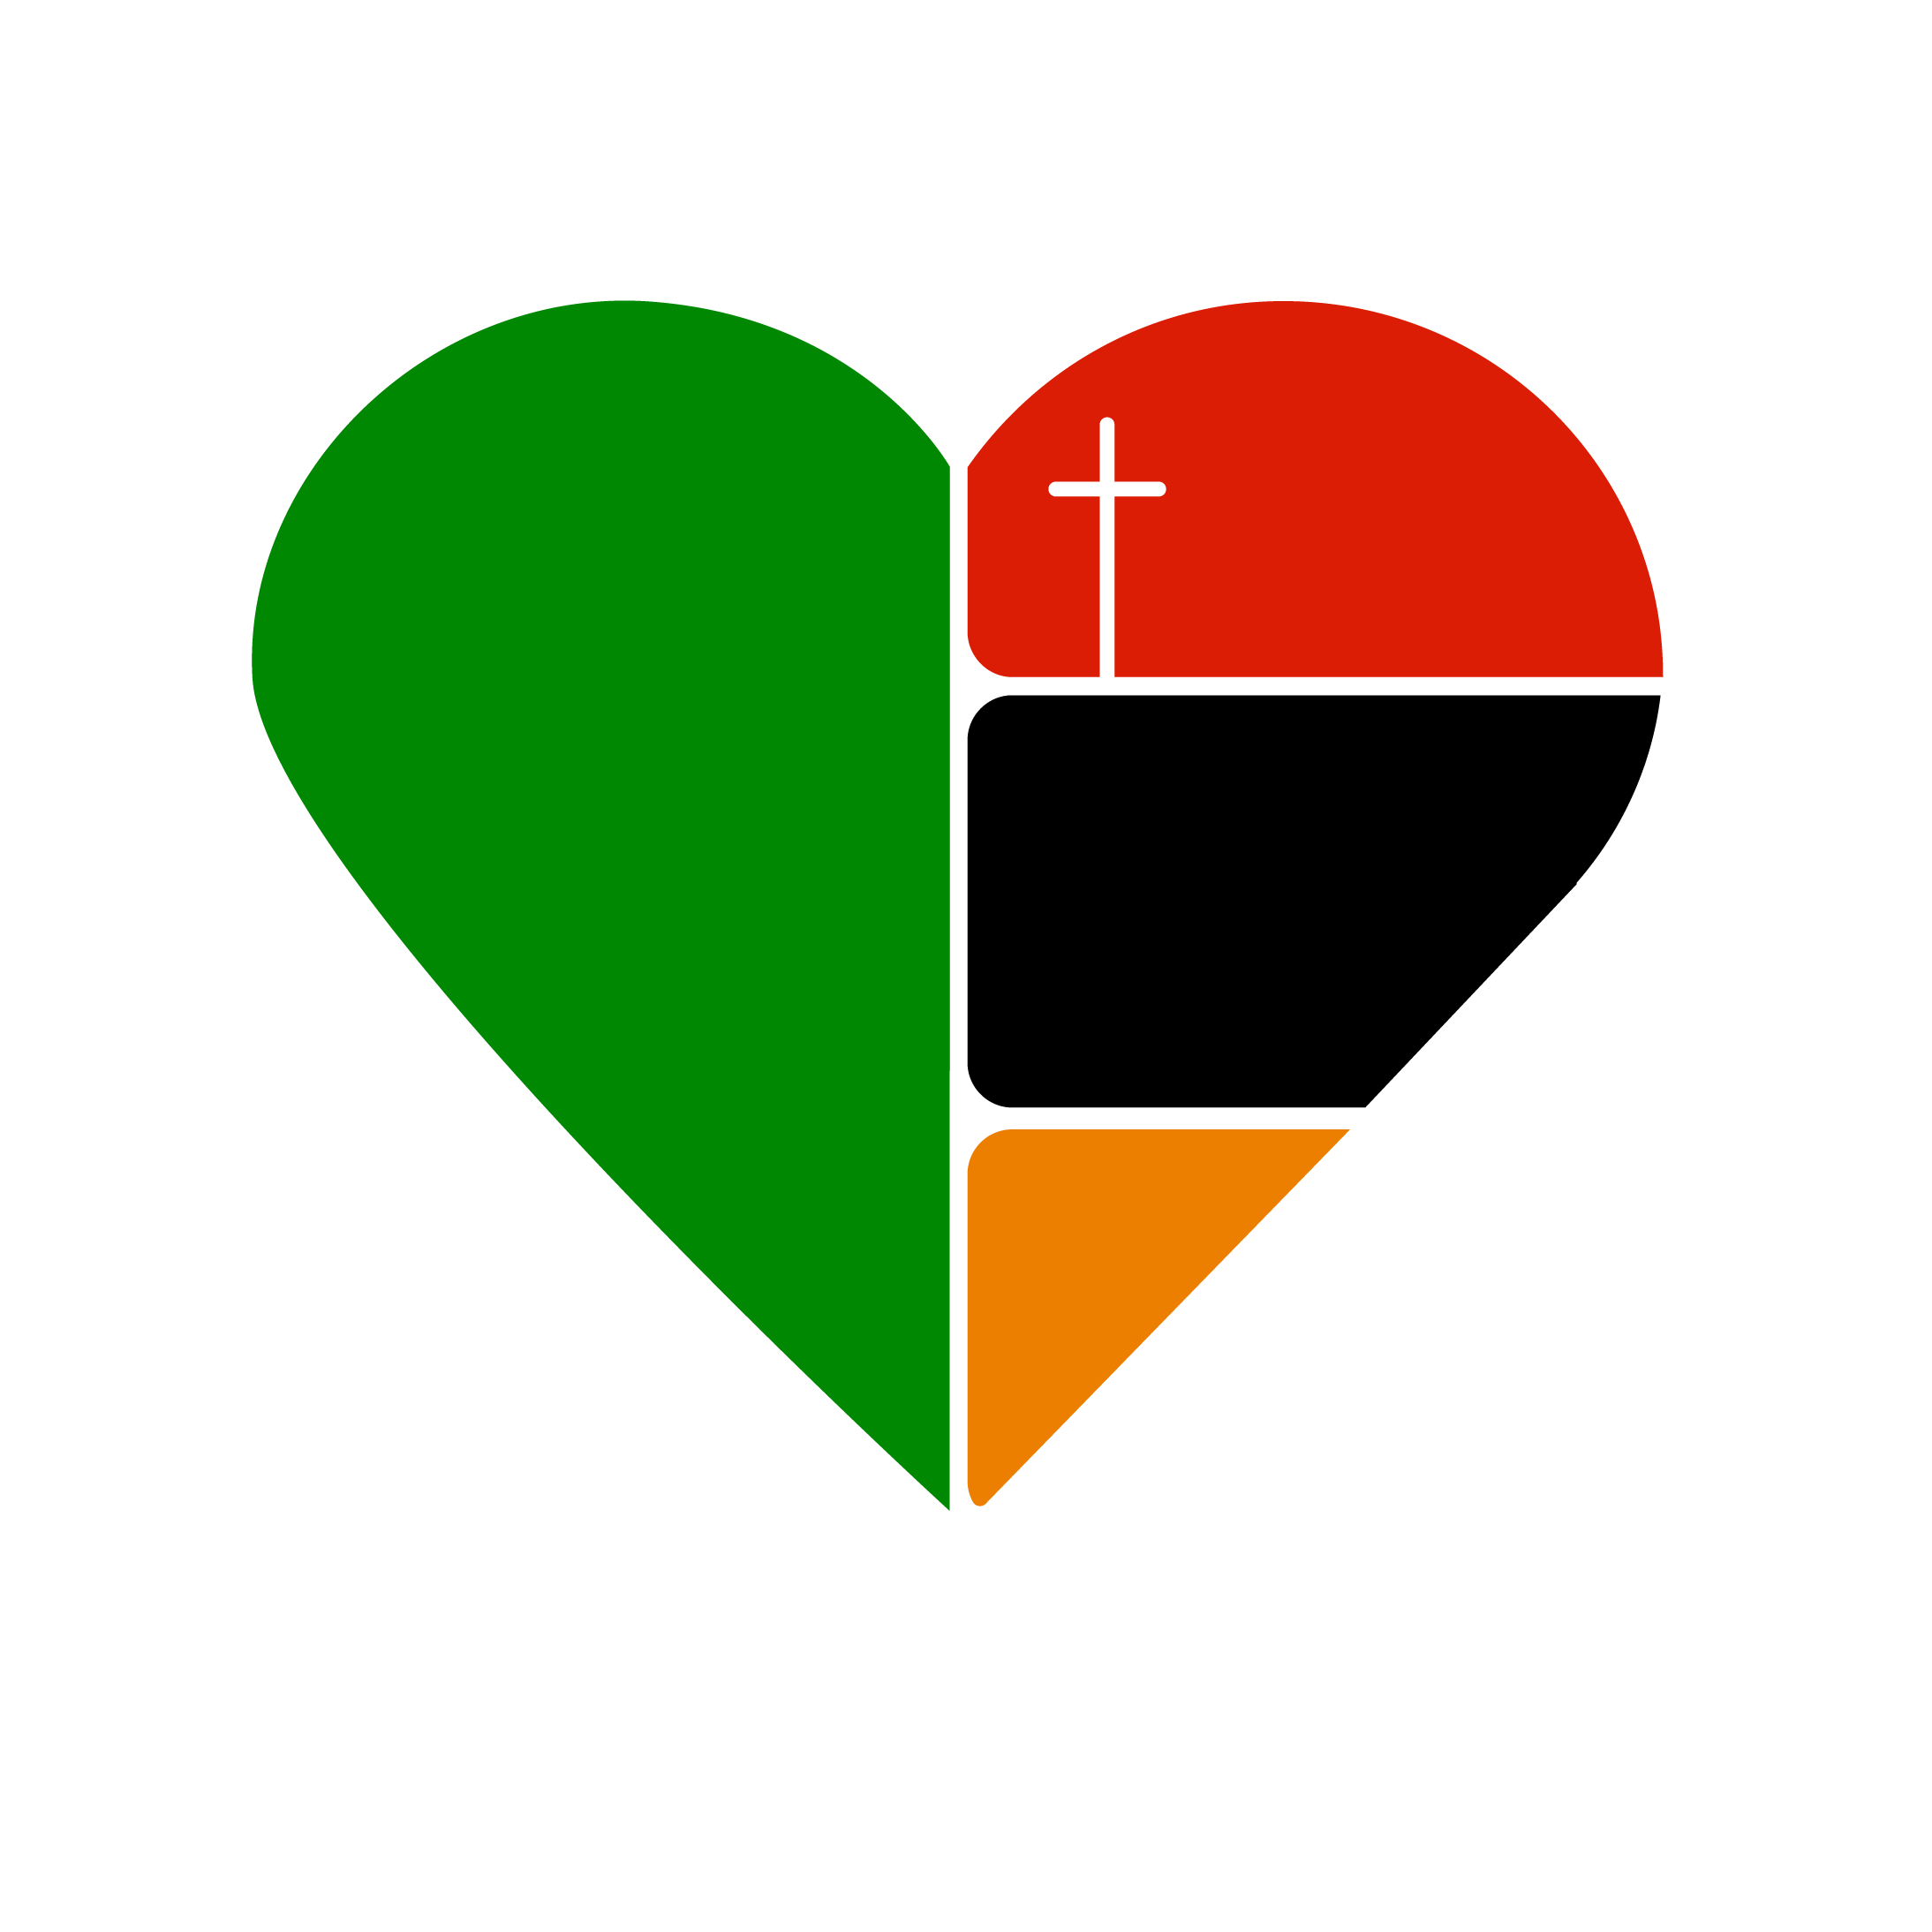 Missions clipart world heart. Zambian mission project sydney